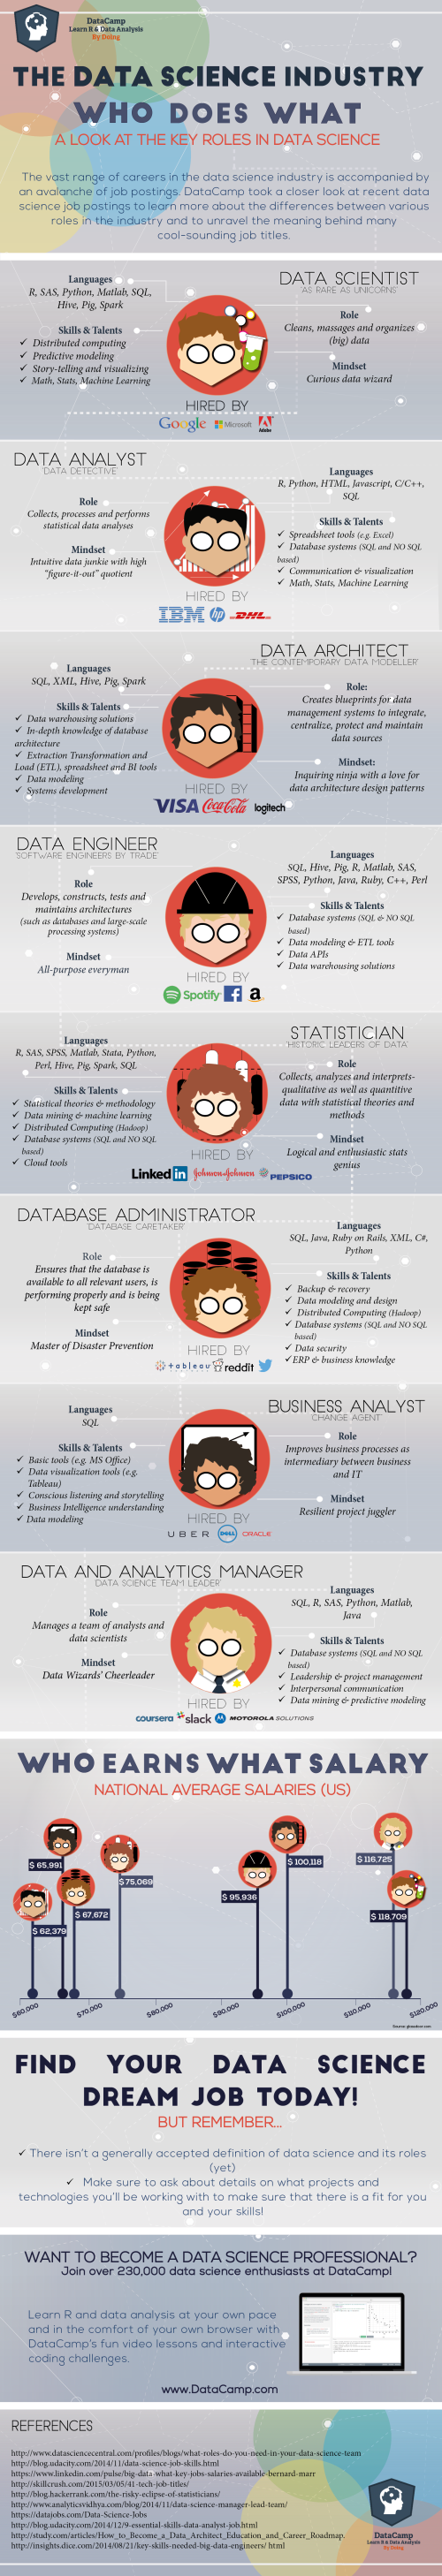 The Data Science Industry: Who Does What? infographic